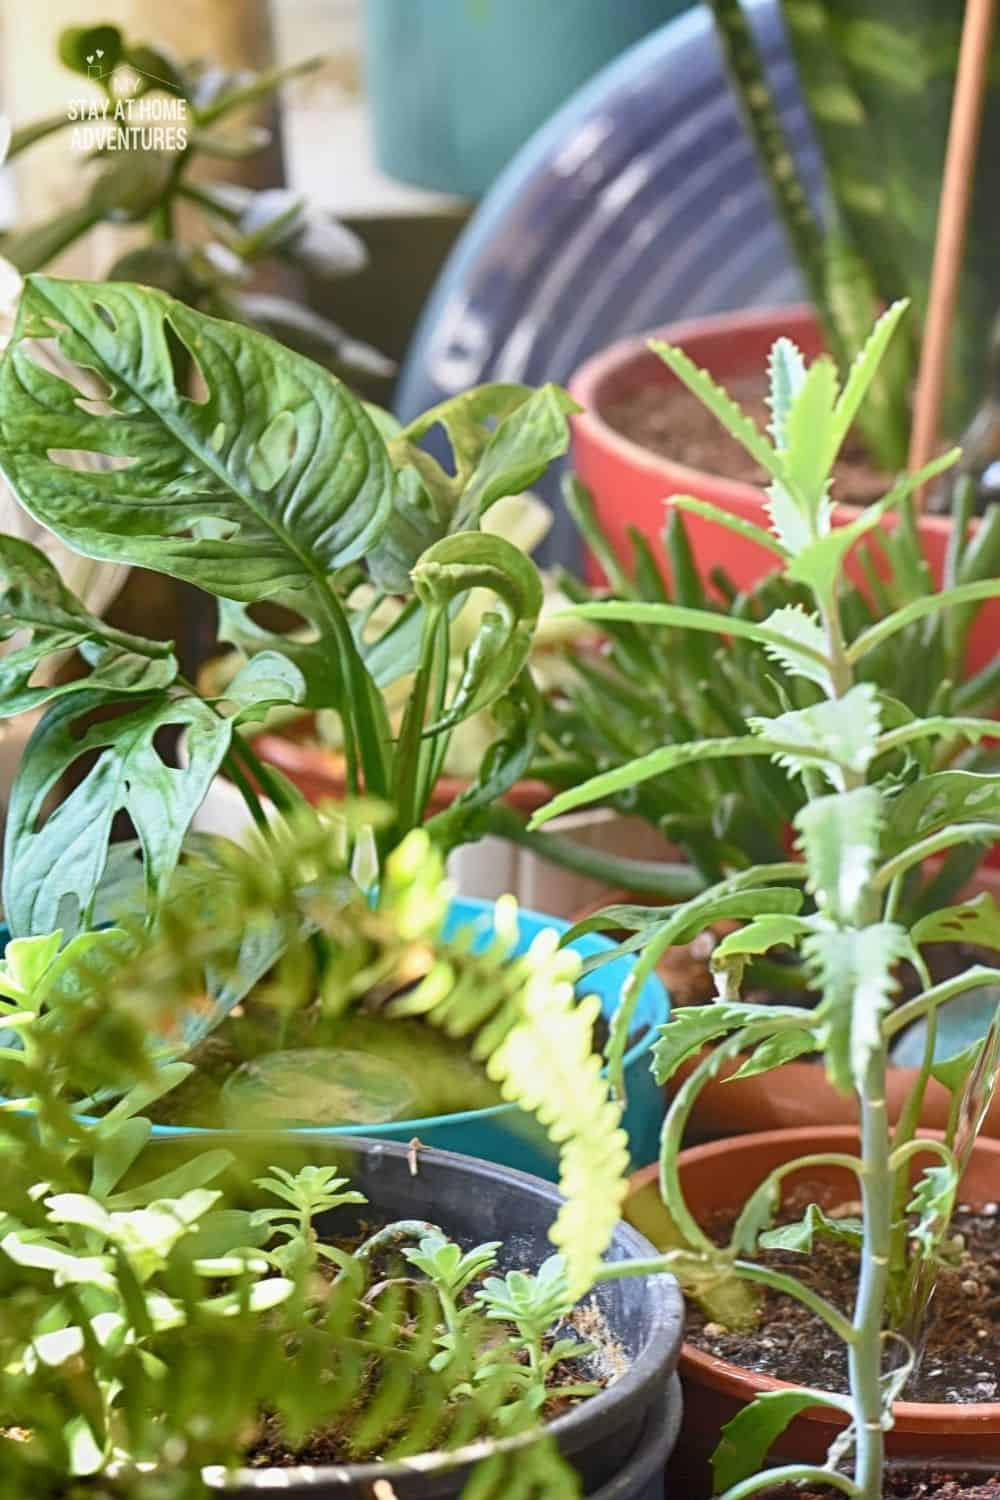 New to indoor gardening? Check out these 6 indoor gardening mistakes beginners should avoid when starting their gardens indoor. via @mystayathome